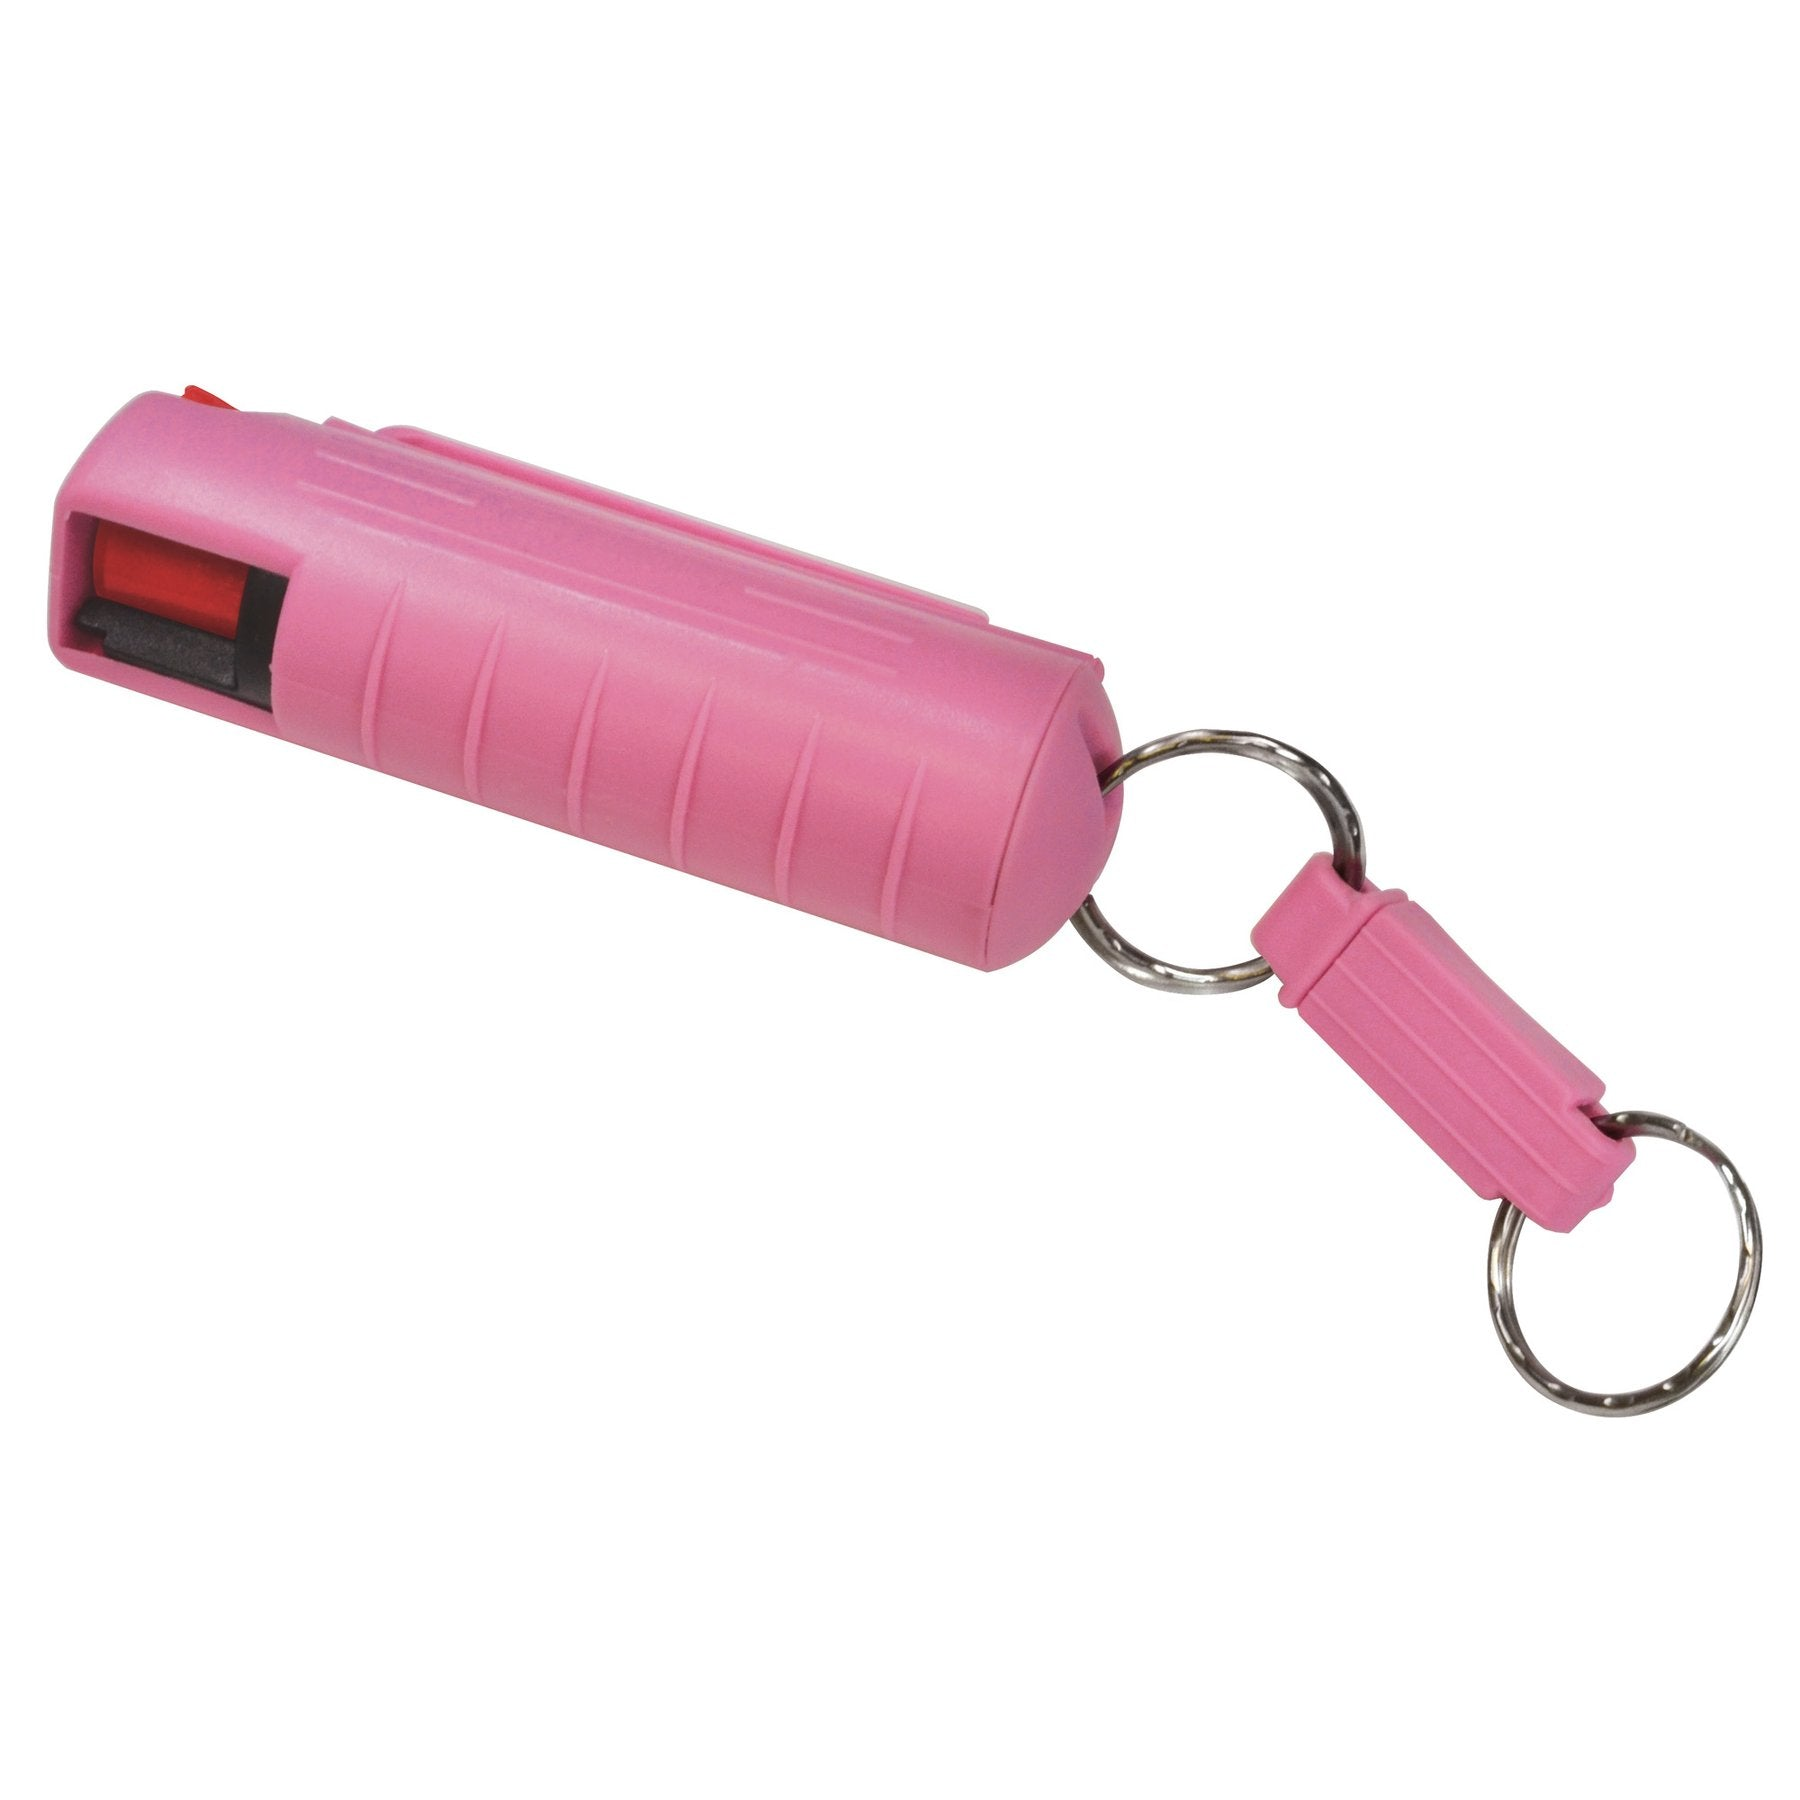 Pepper Spray with pink hard case